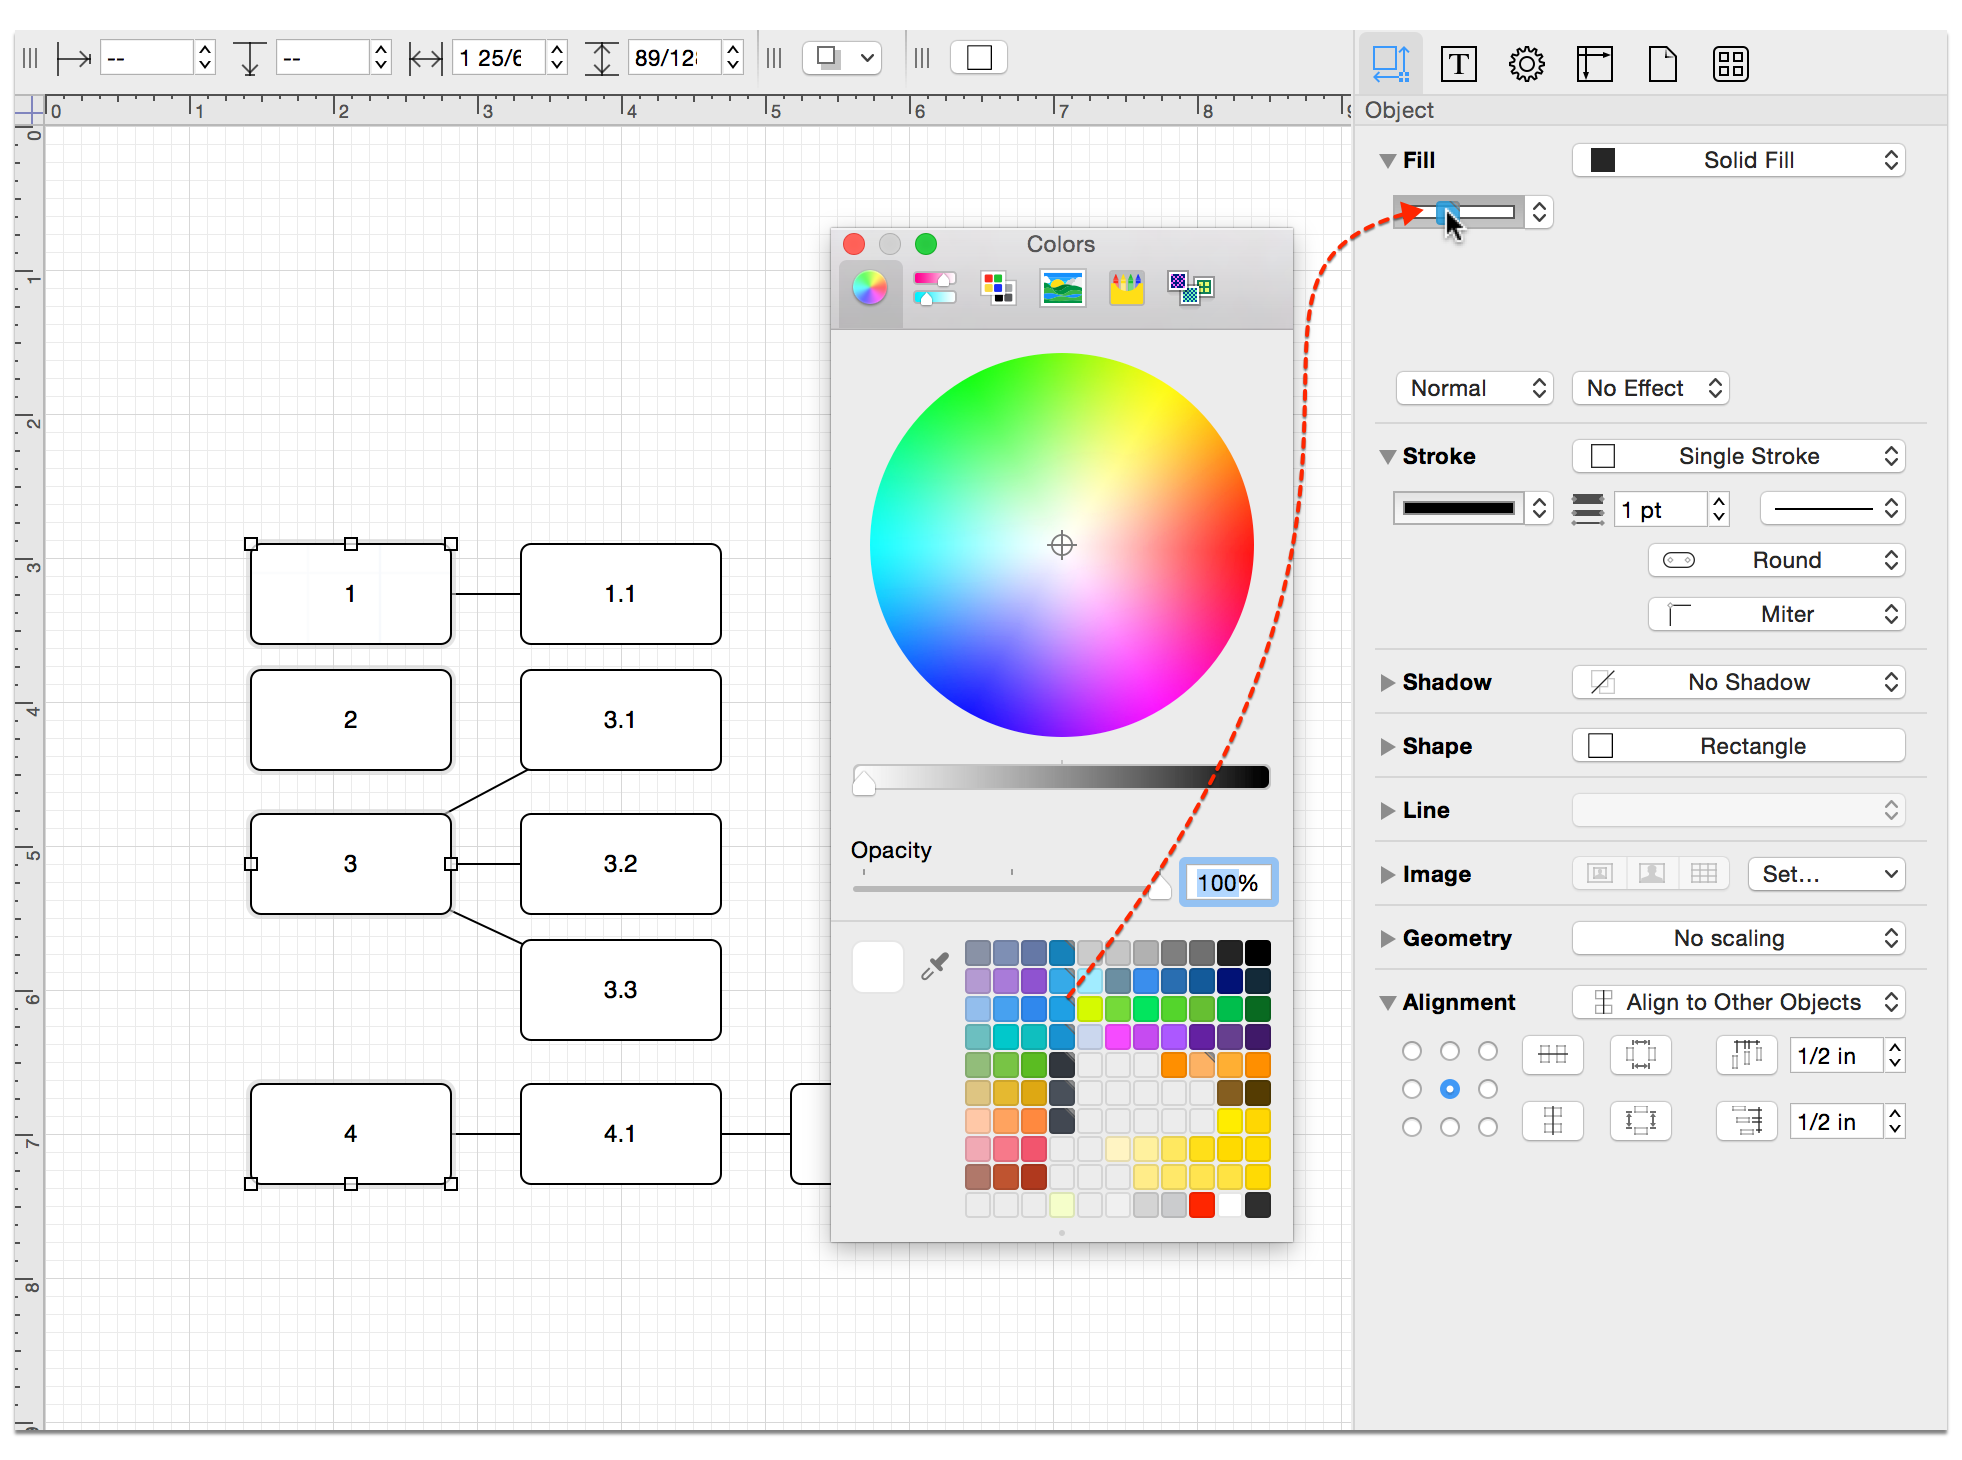 Dragging colors from the color well to a color object